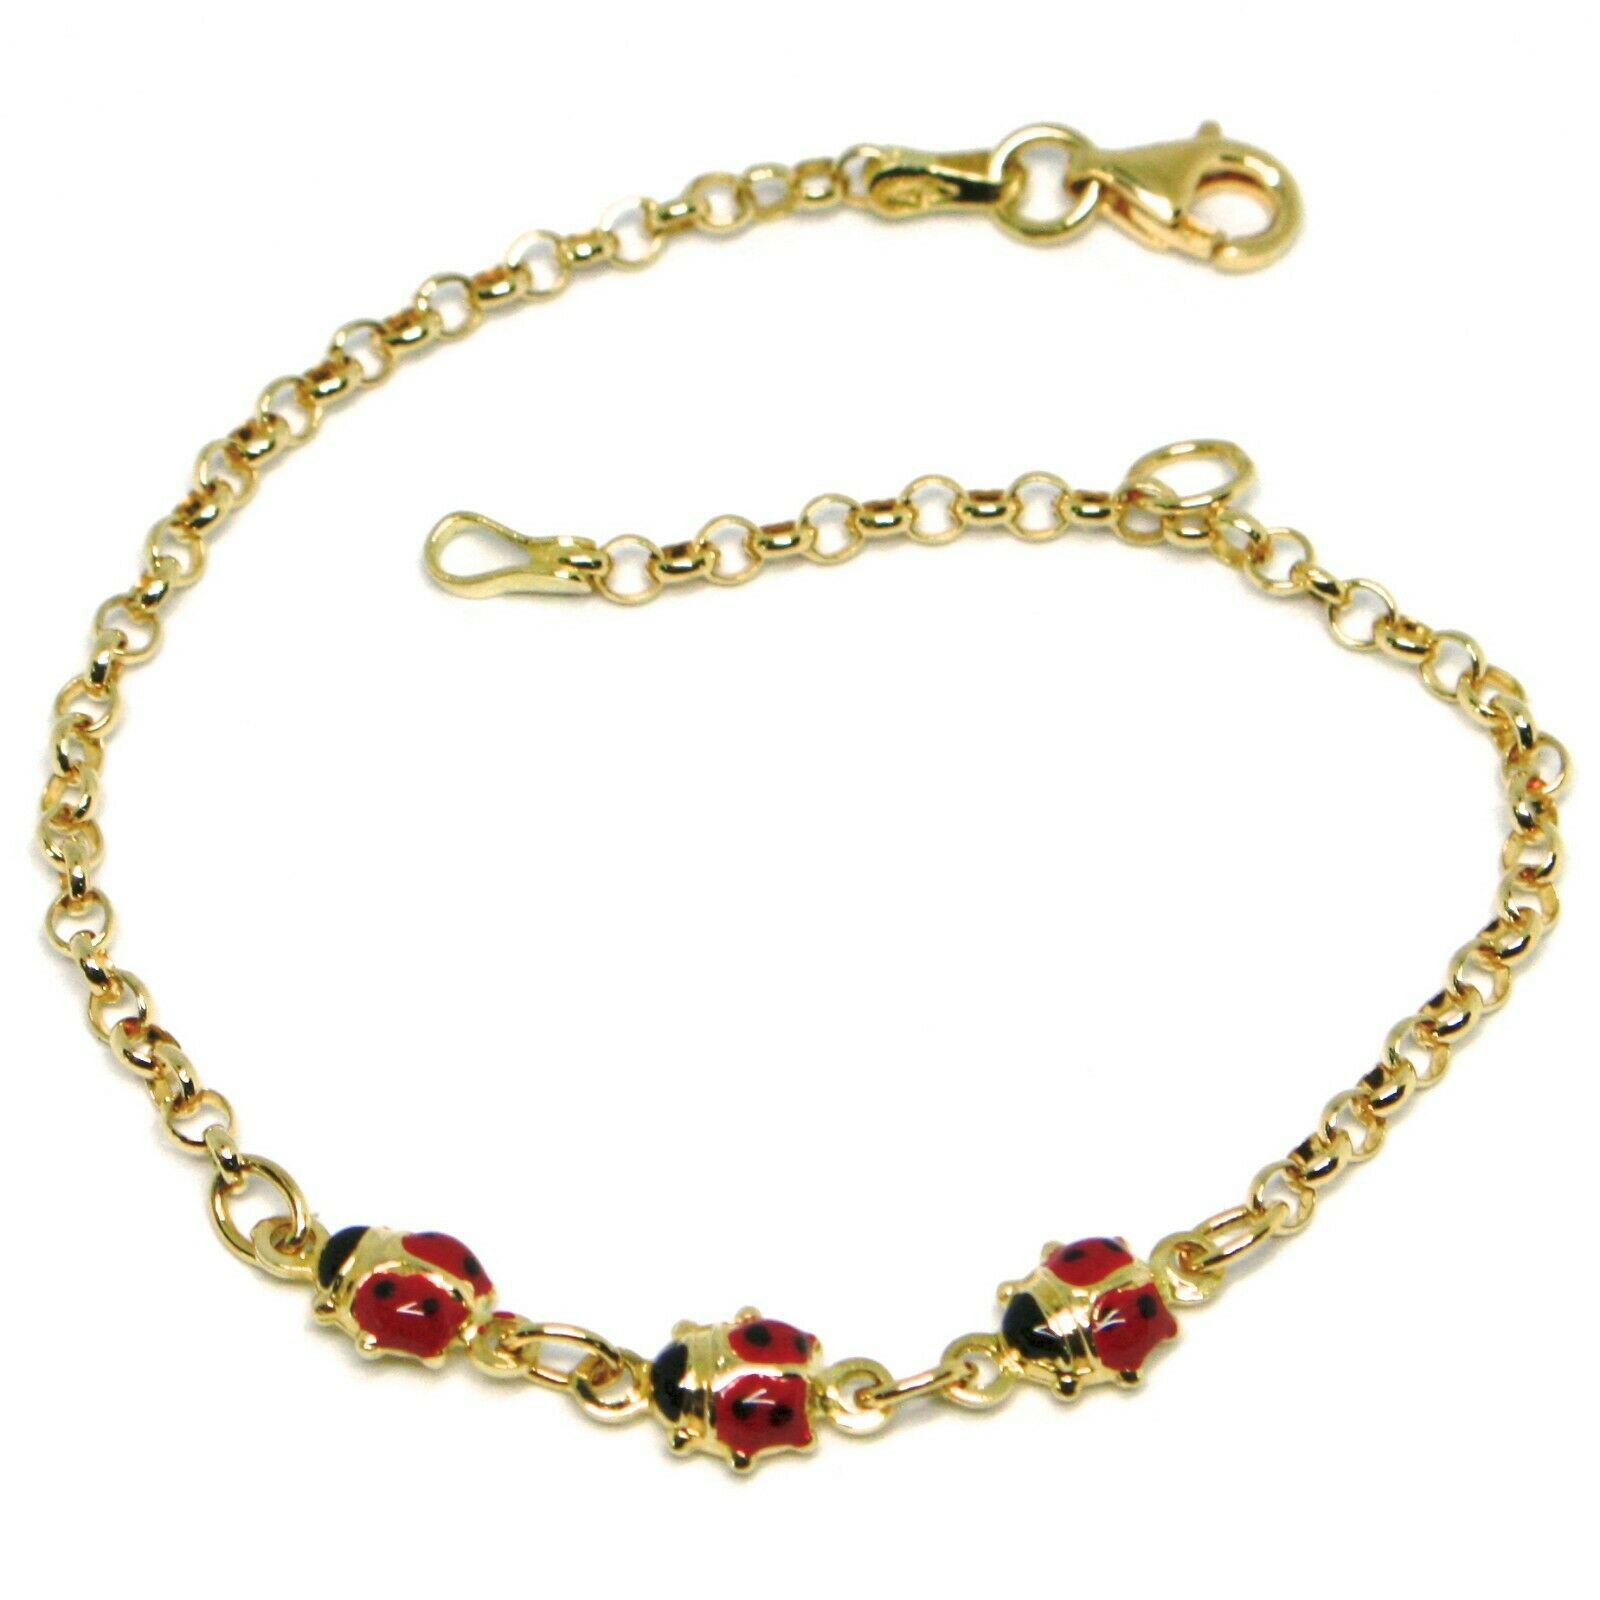 Bracelet Yellow Gold 18K 750, Girls, Three Ladybirds Enamel 16.5 CM